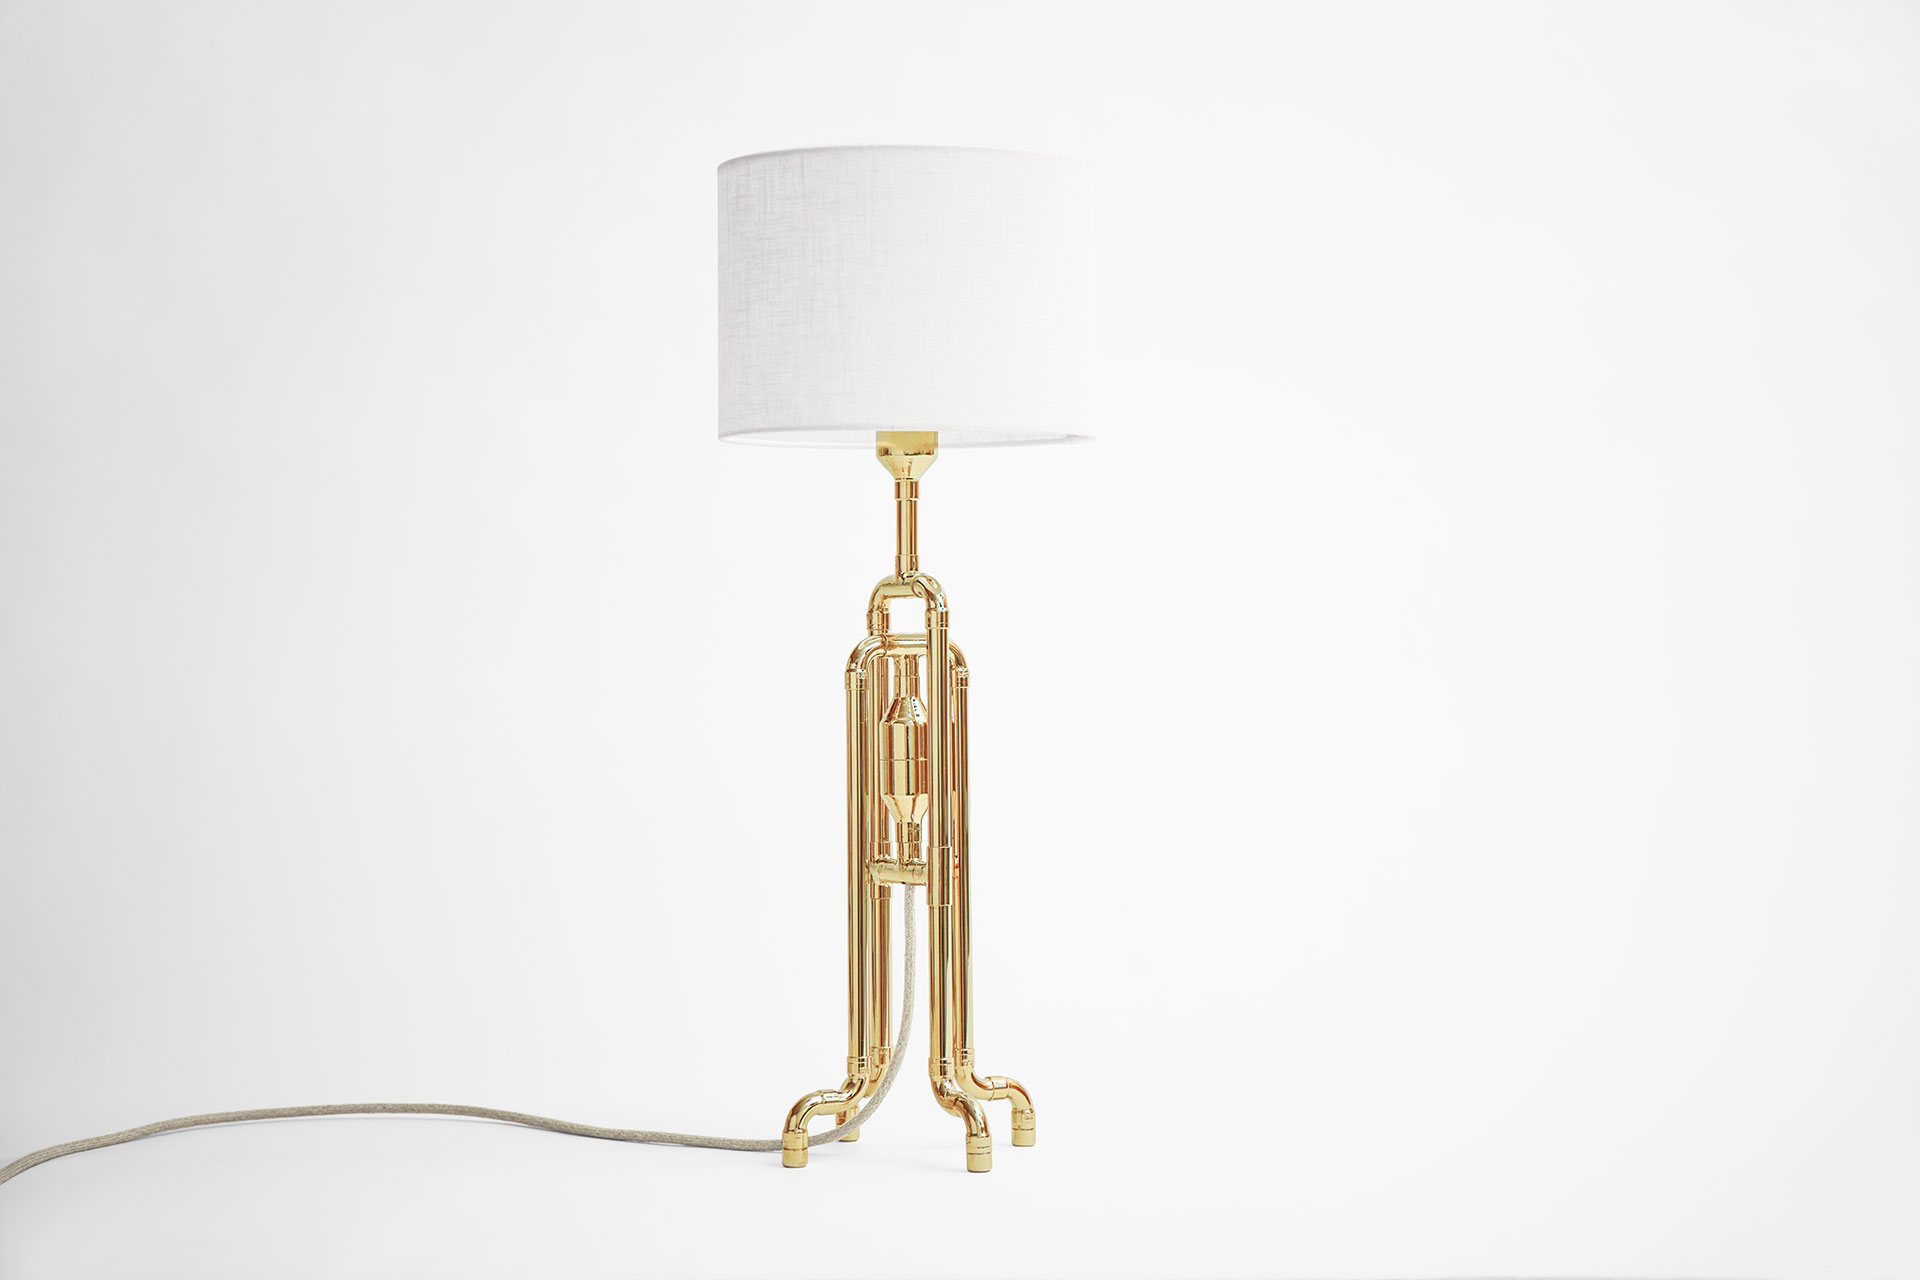 Cool Desk Lamp Unique Table Lamps In Copper Brass Nickel Or Colorful